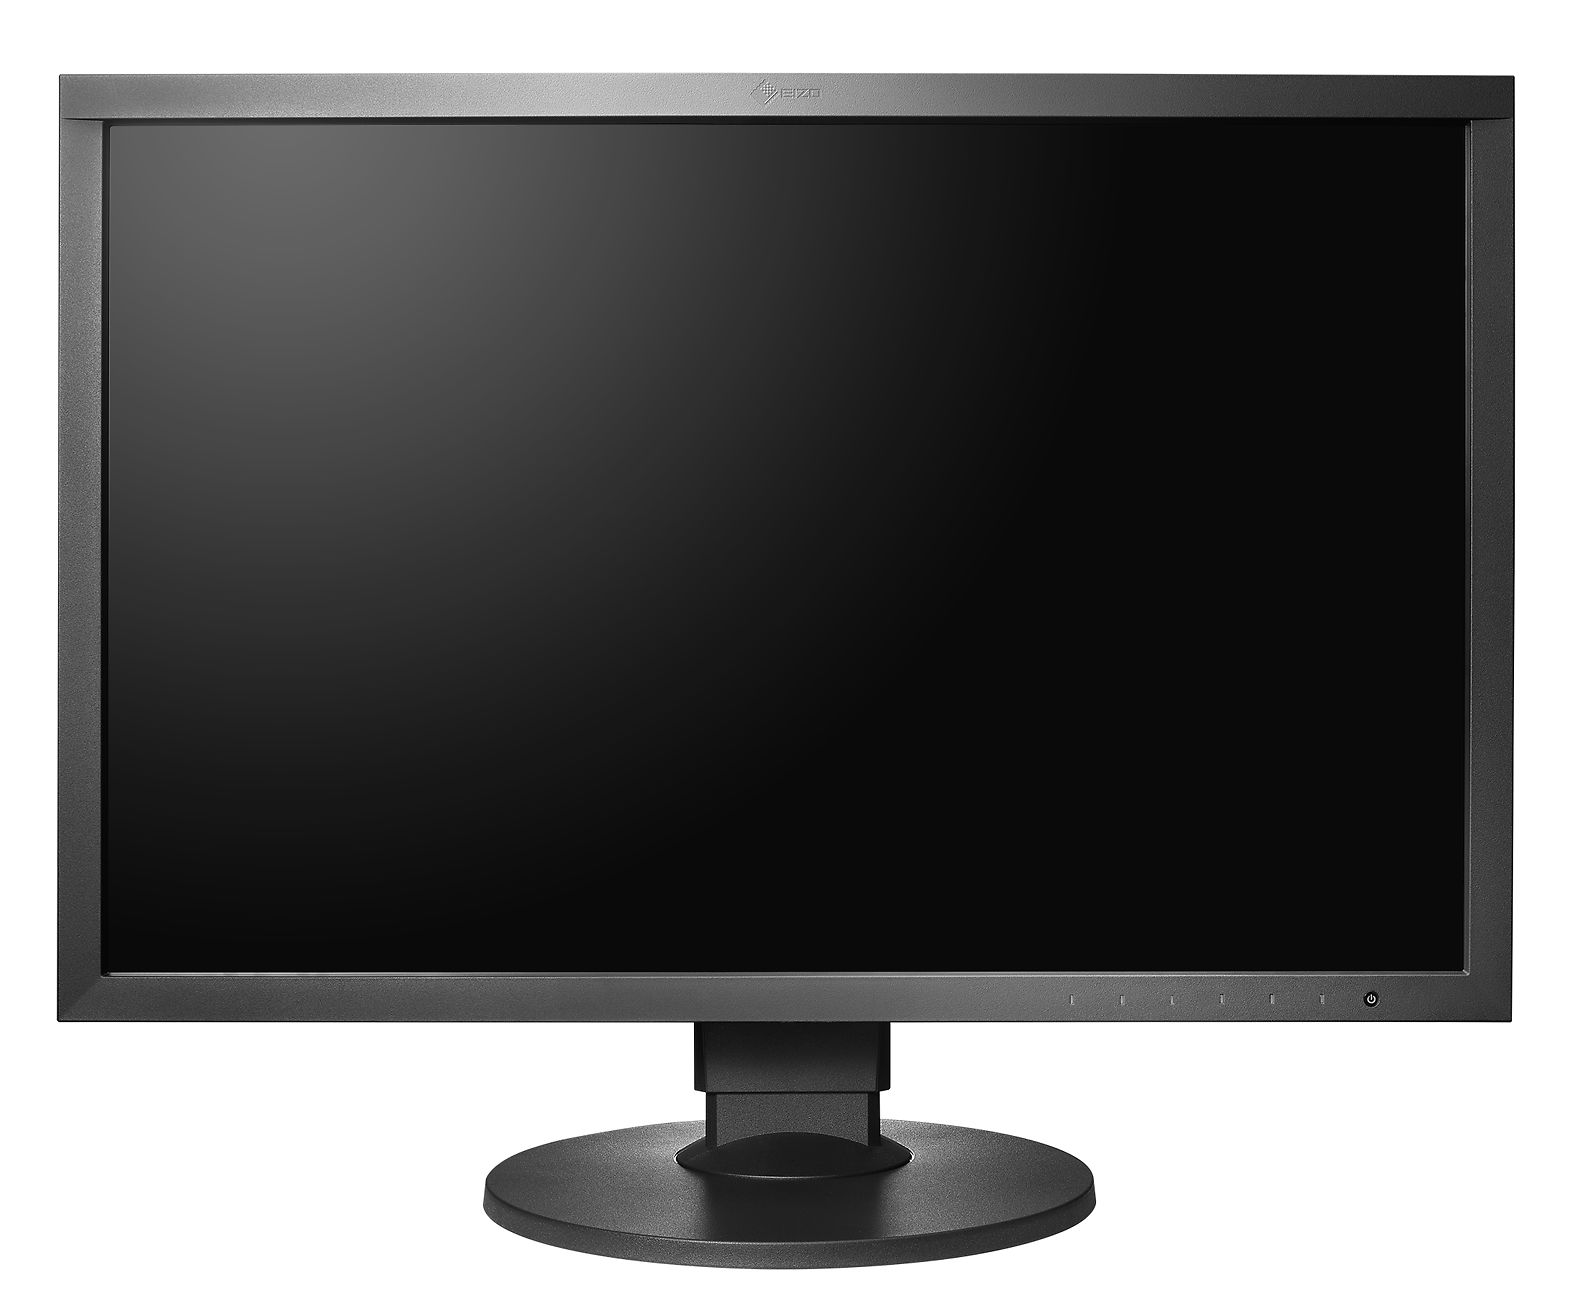 "Eizo ColorEdge CS2420 24"" Monitor Image"